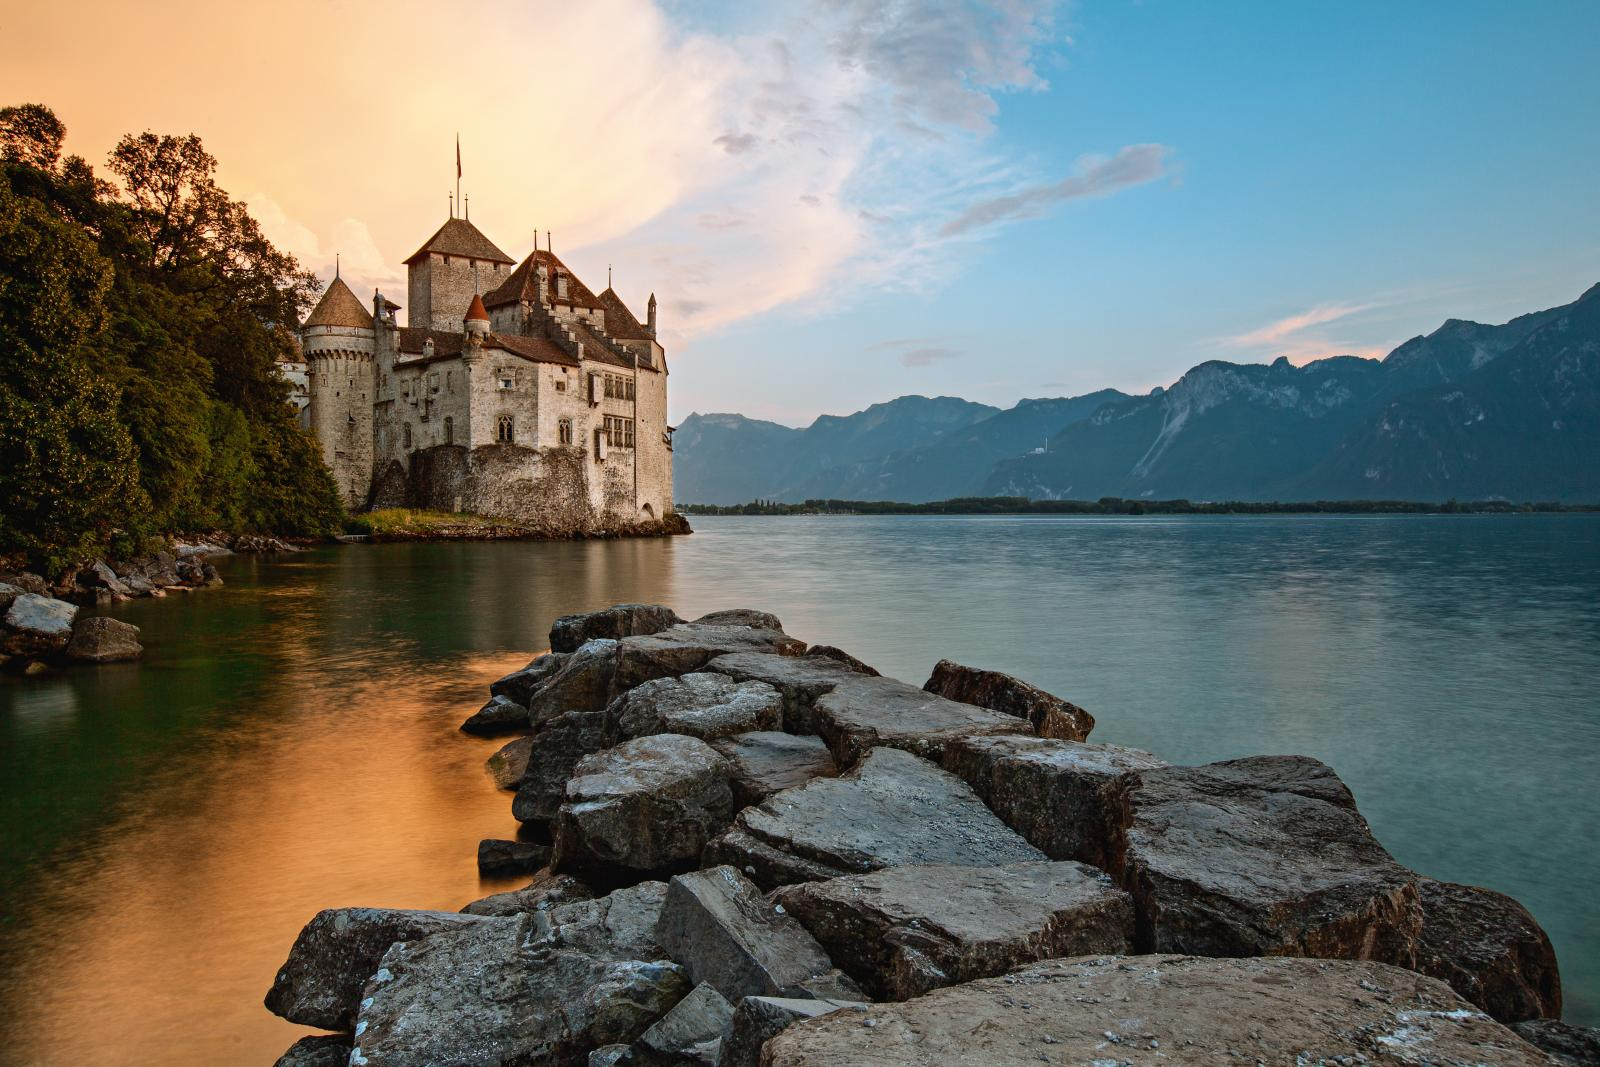 Chillon Castle located on shores of Lake Geneva